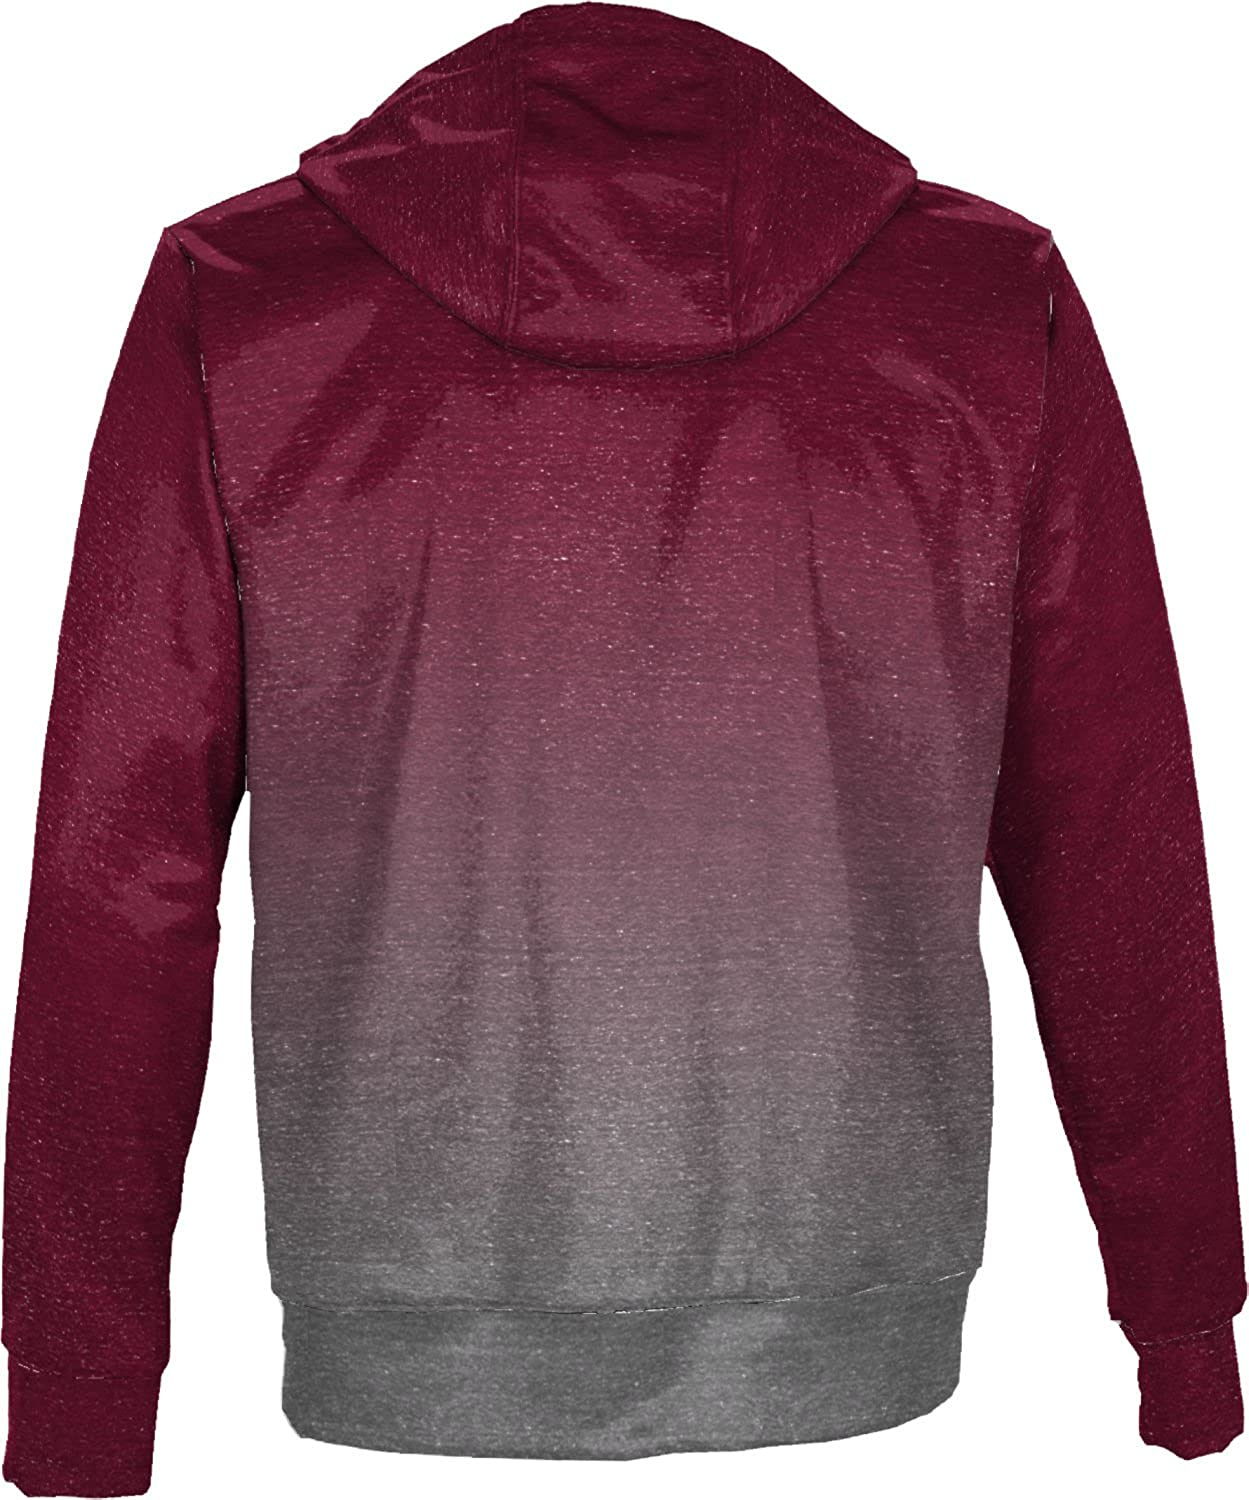 Ombre ProSphere New Mexico State University Boys Pullover Hoodie